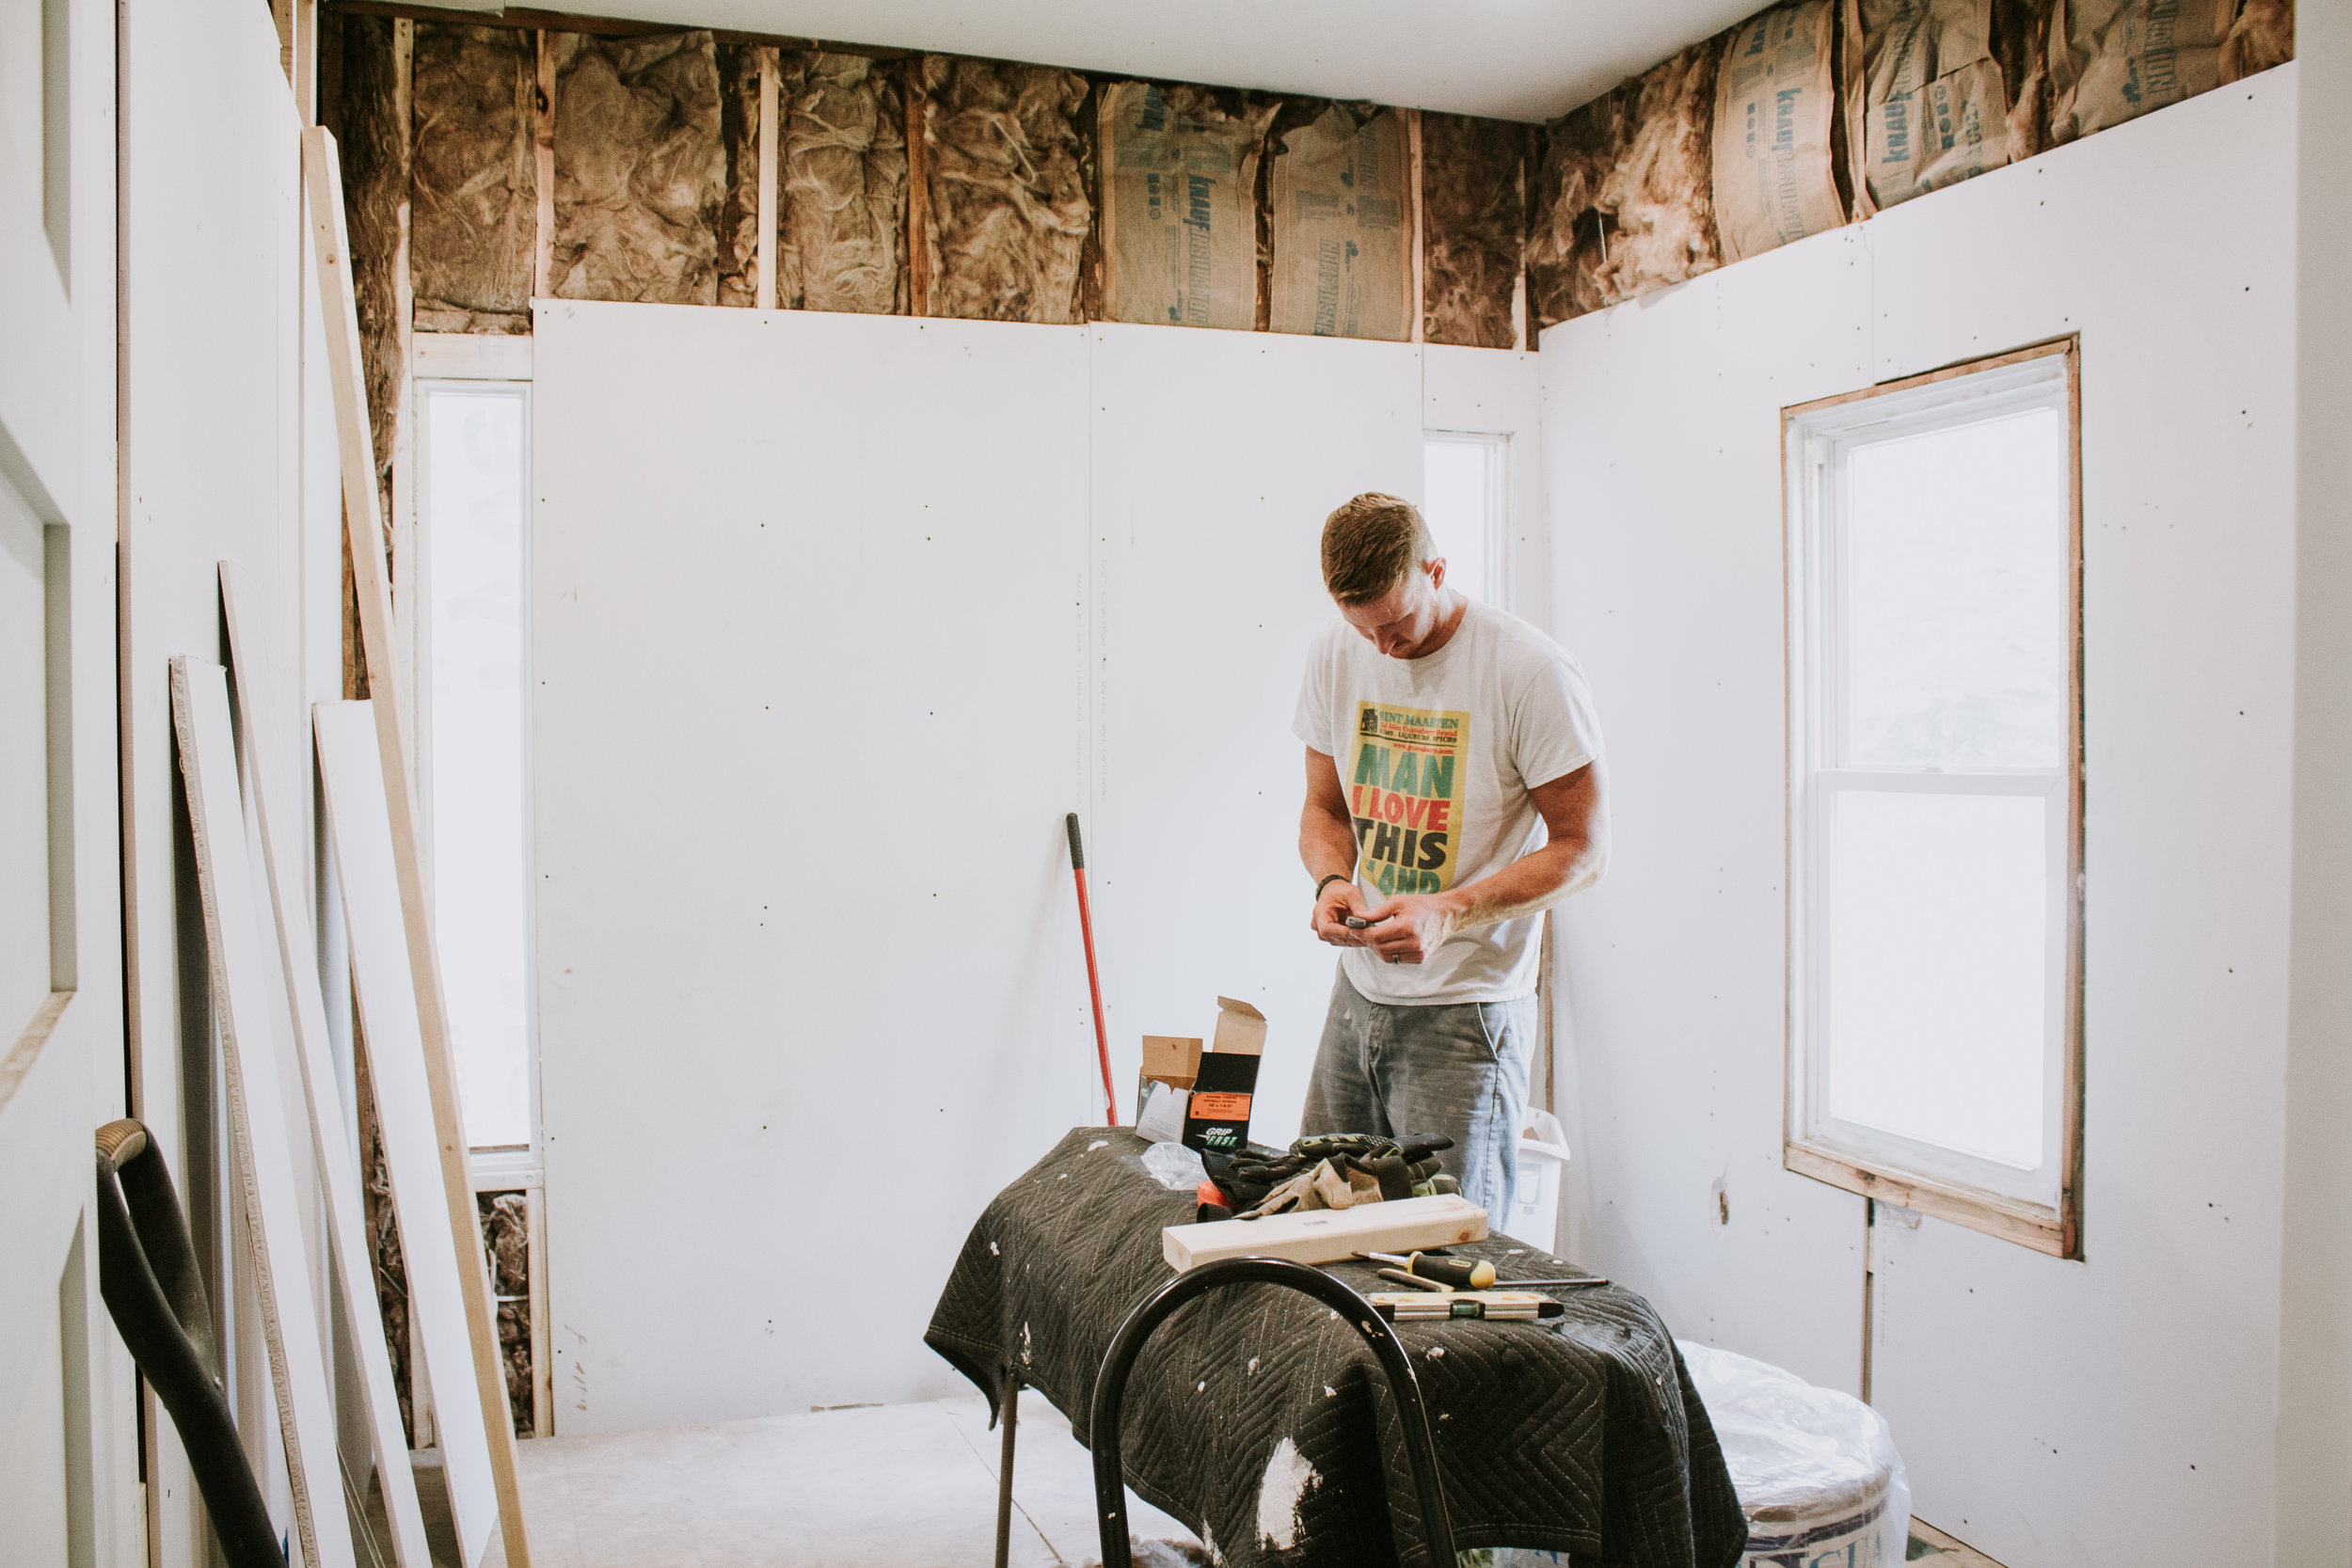 2018 in Review - What happened in our lives in 2018 - the behind the scenes of Refined Design - working on our guest room renovation